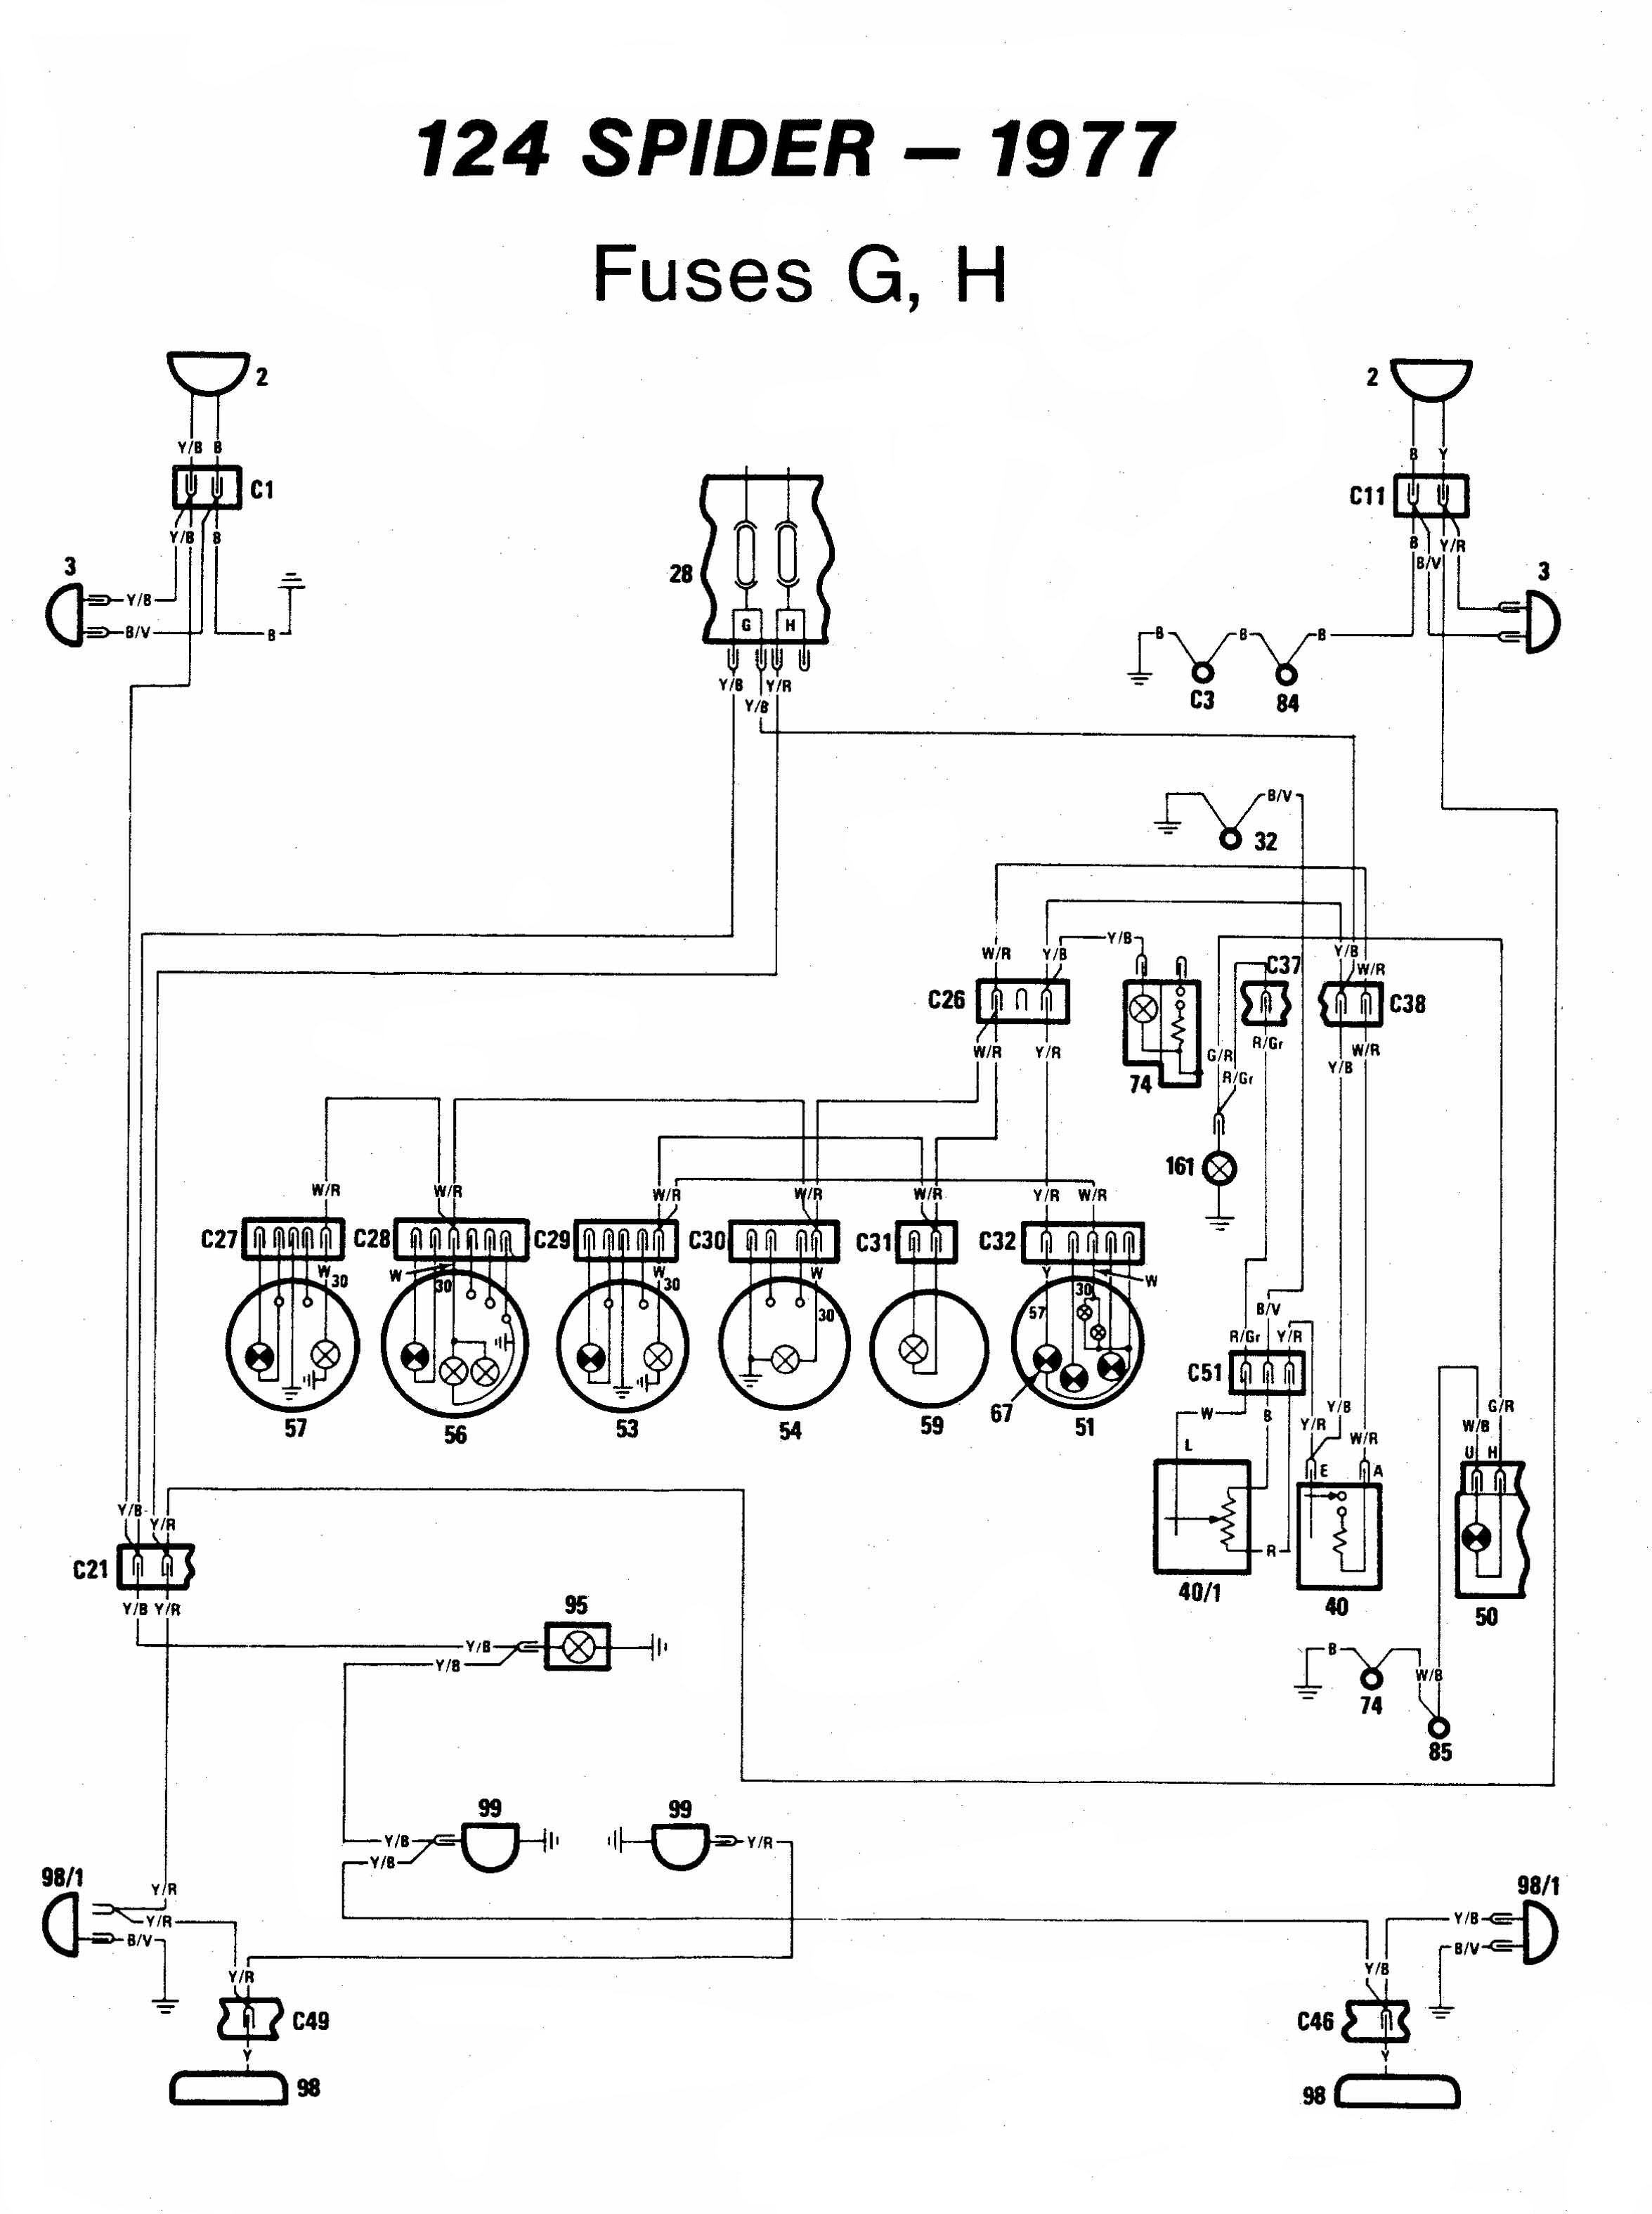 Fiat Brava Wiring Diagram Guide And Troubleshooting Of Bravo Pdf 1979 Spider Diagrams Img Rh 10 Andreas Bolz De 2008 Electrical